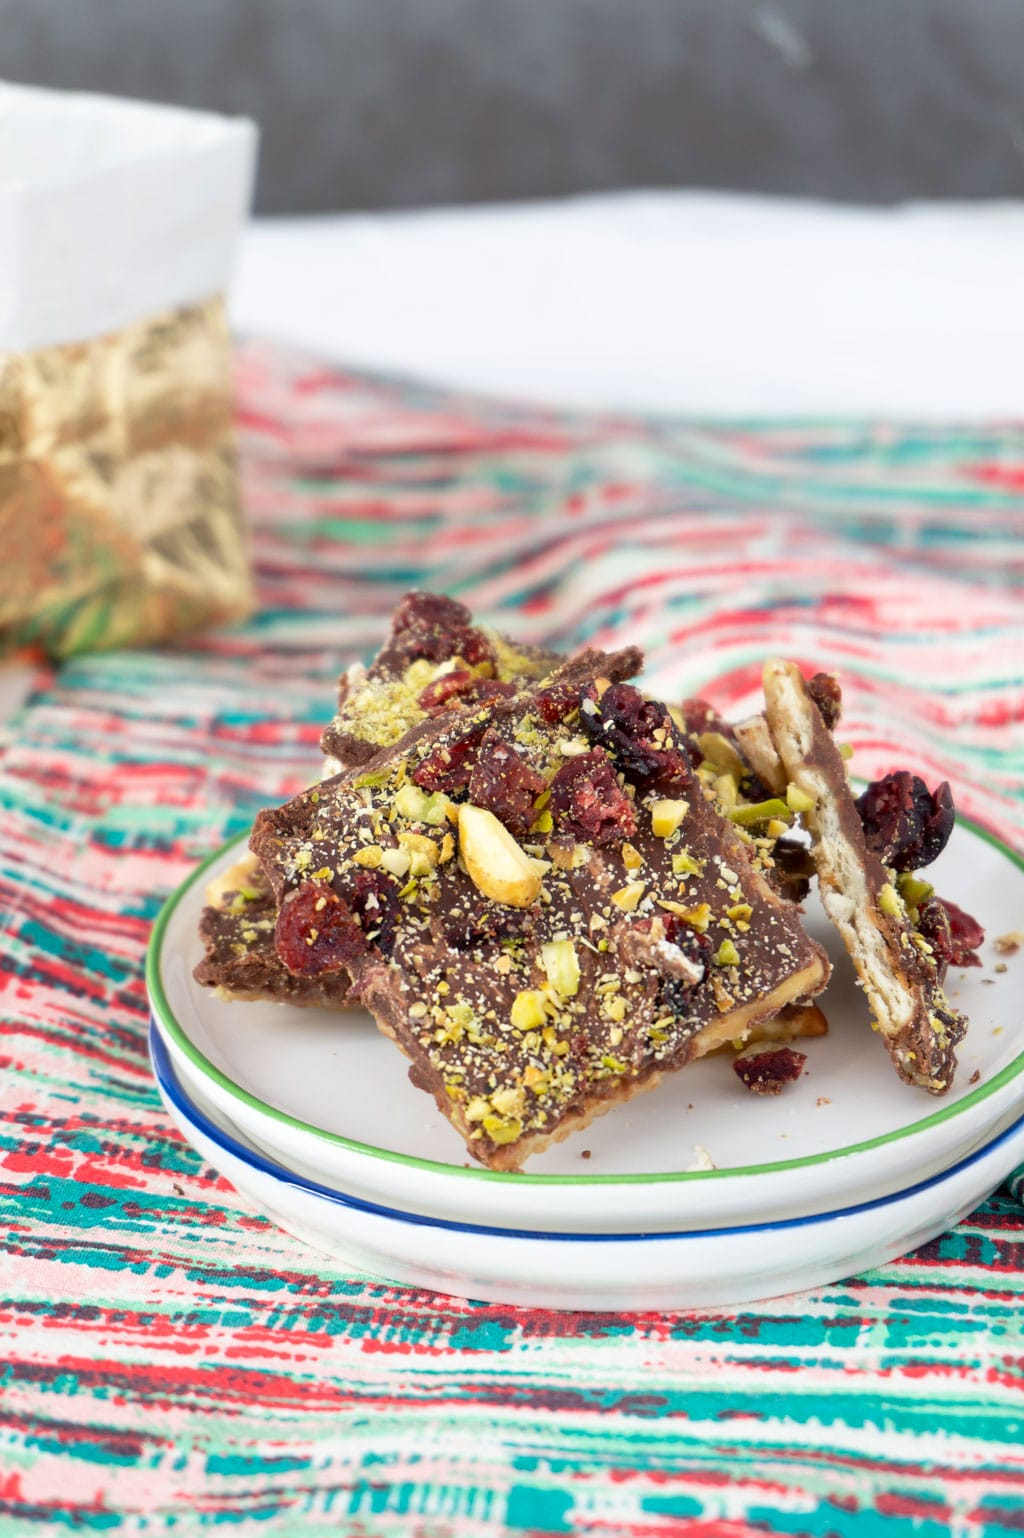 Vertical image of saltine toffee showing pistachios and dried cherries